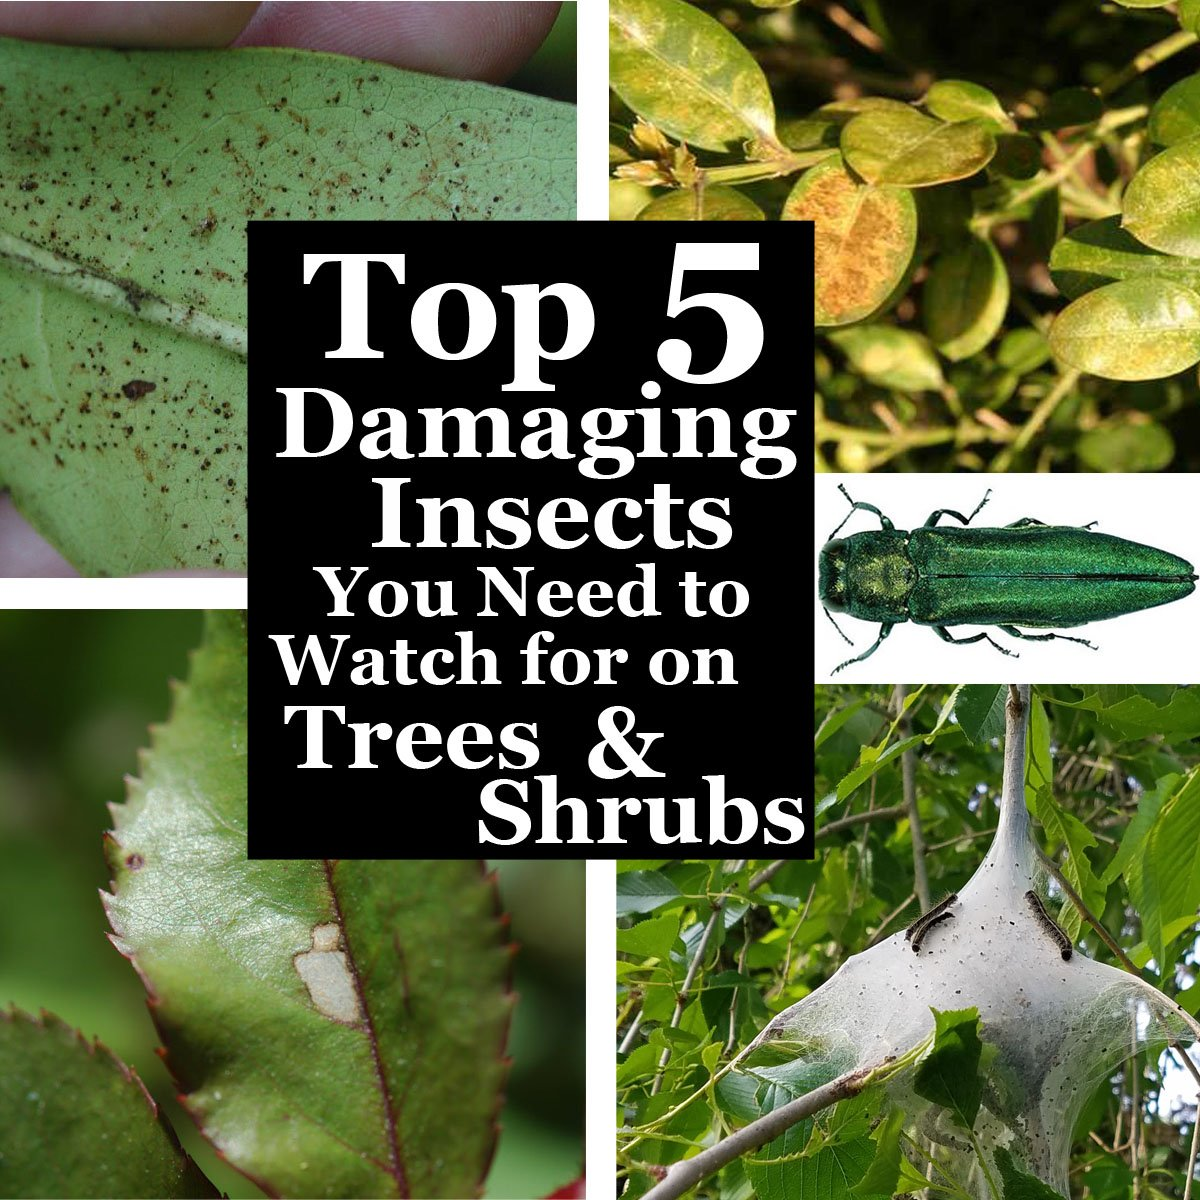 2018-Top-5-Damaging-Insects-You-Need-to-Watch-for-on-trees-and-shrubs-header